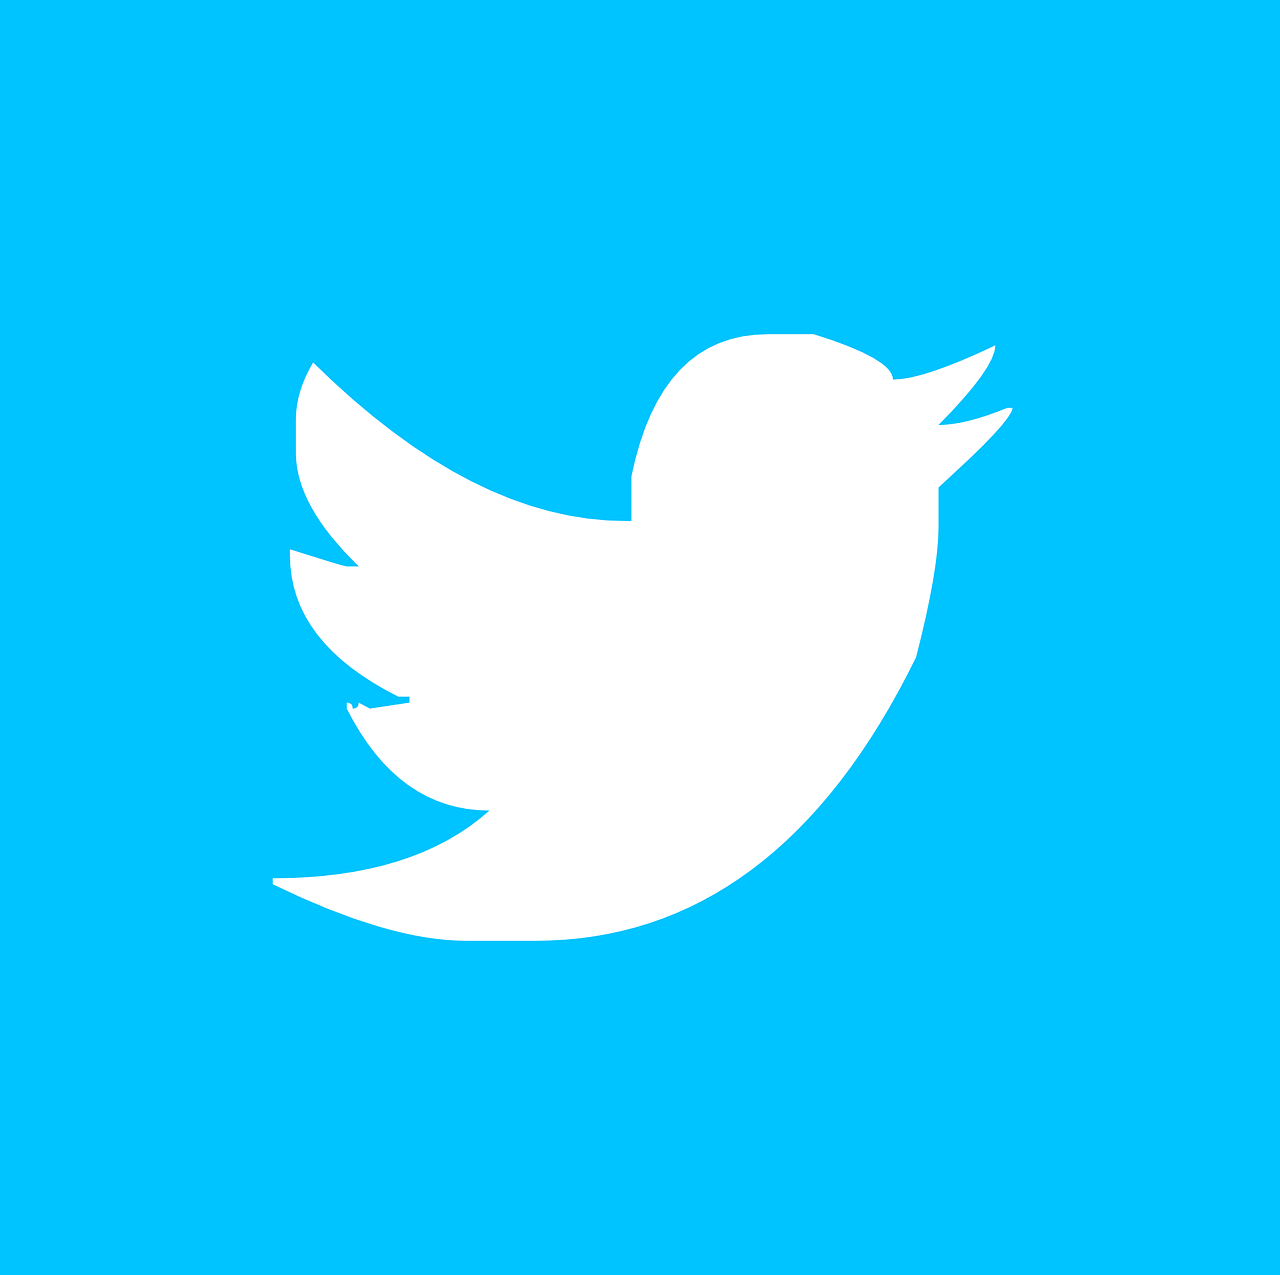 Twitter's job cuts: is this how a new boss should make their mark?